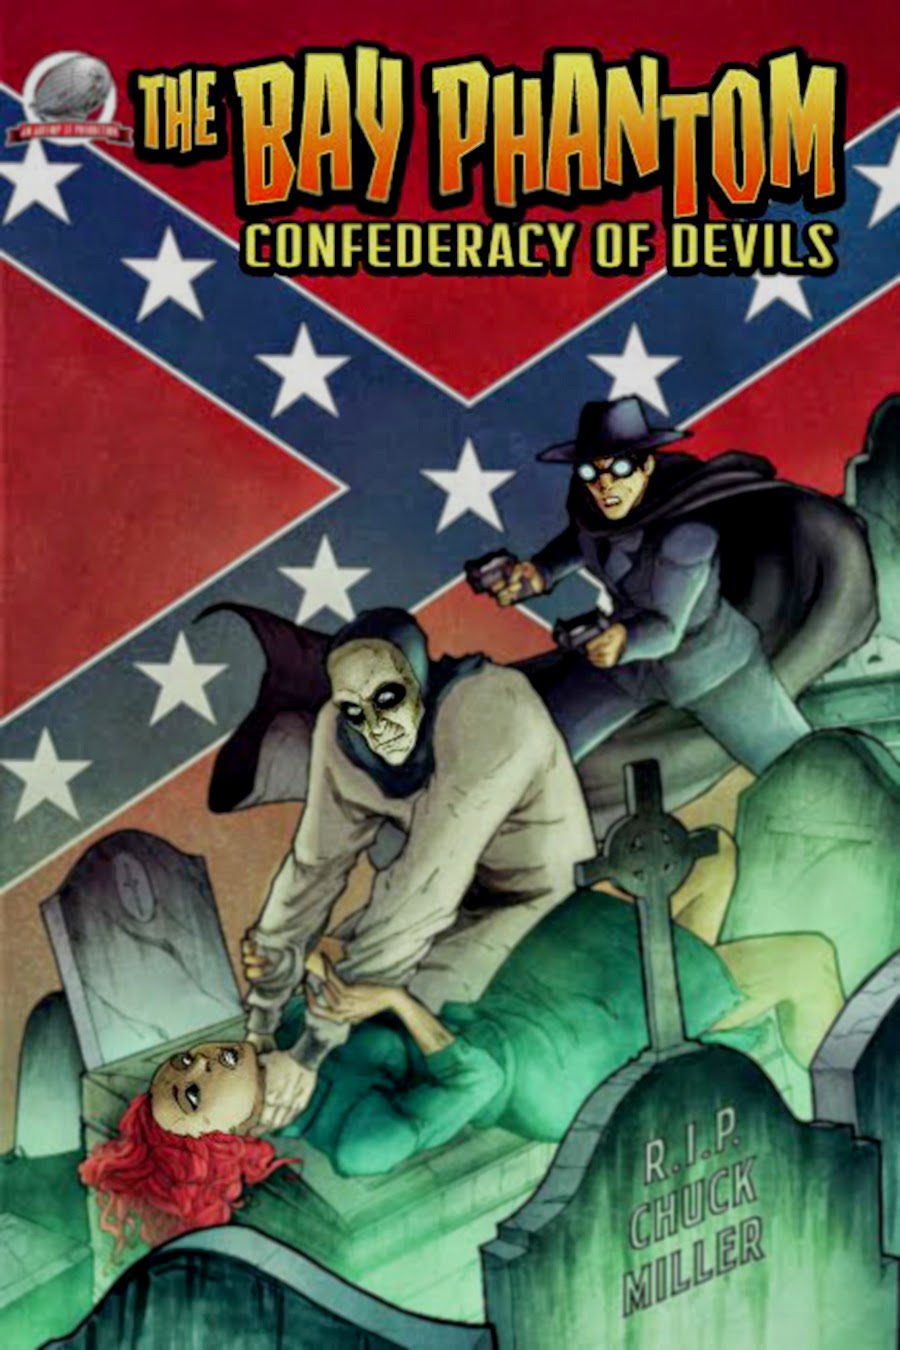 Airship 27 Production announces the release Chuck Miller's newest pulp  thriller, The Bay Phantom – Confederacy of Devils.